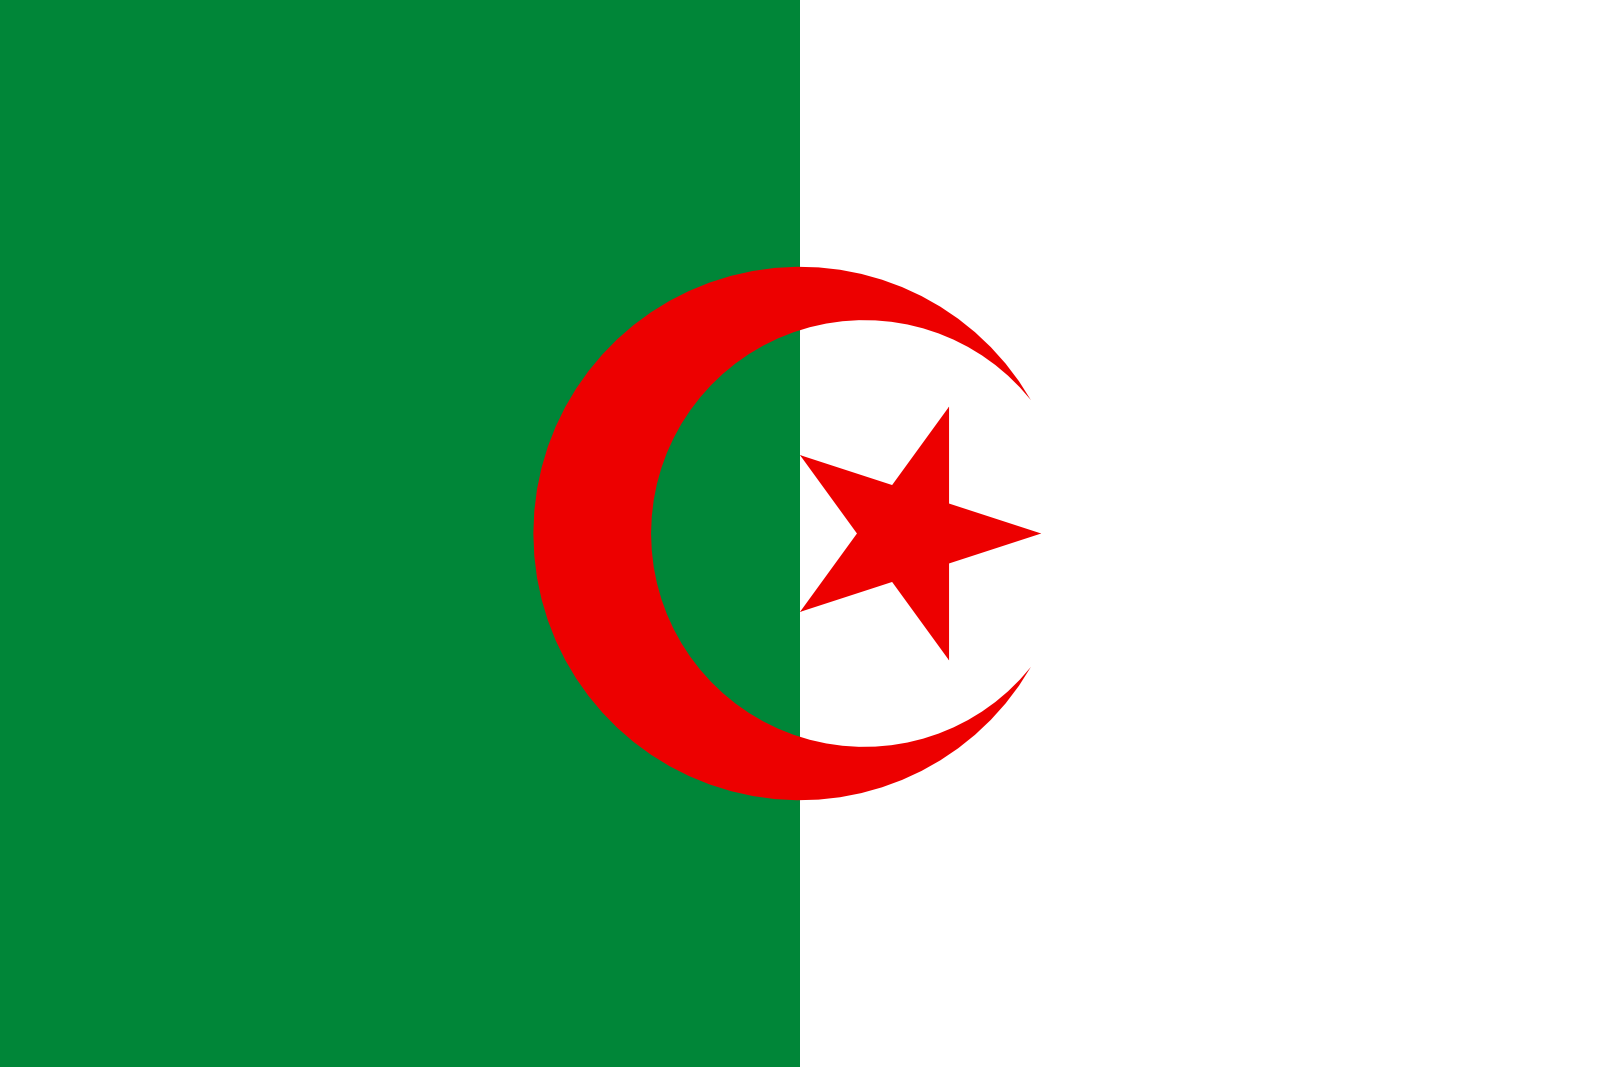 e7b3437d37d0 Algeria Filter - For Facebook profile pictures